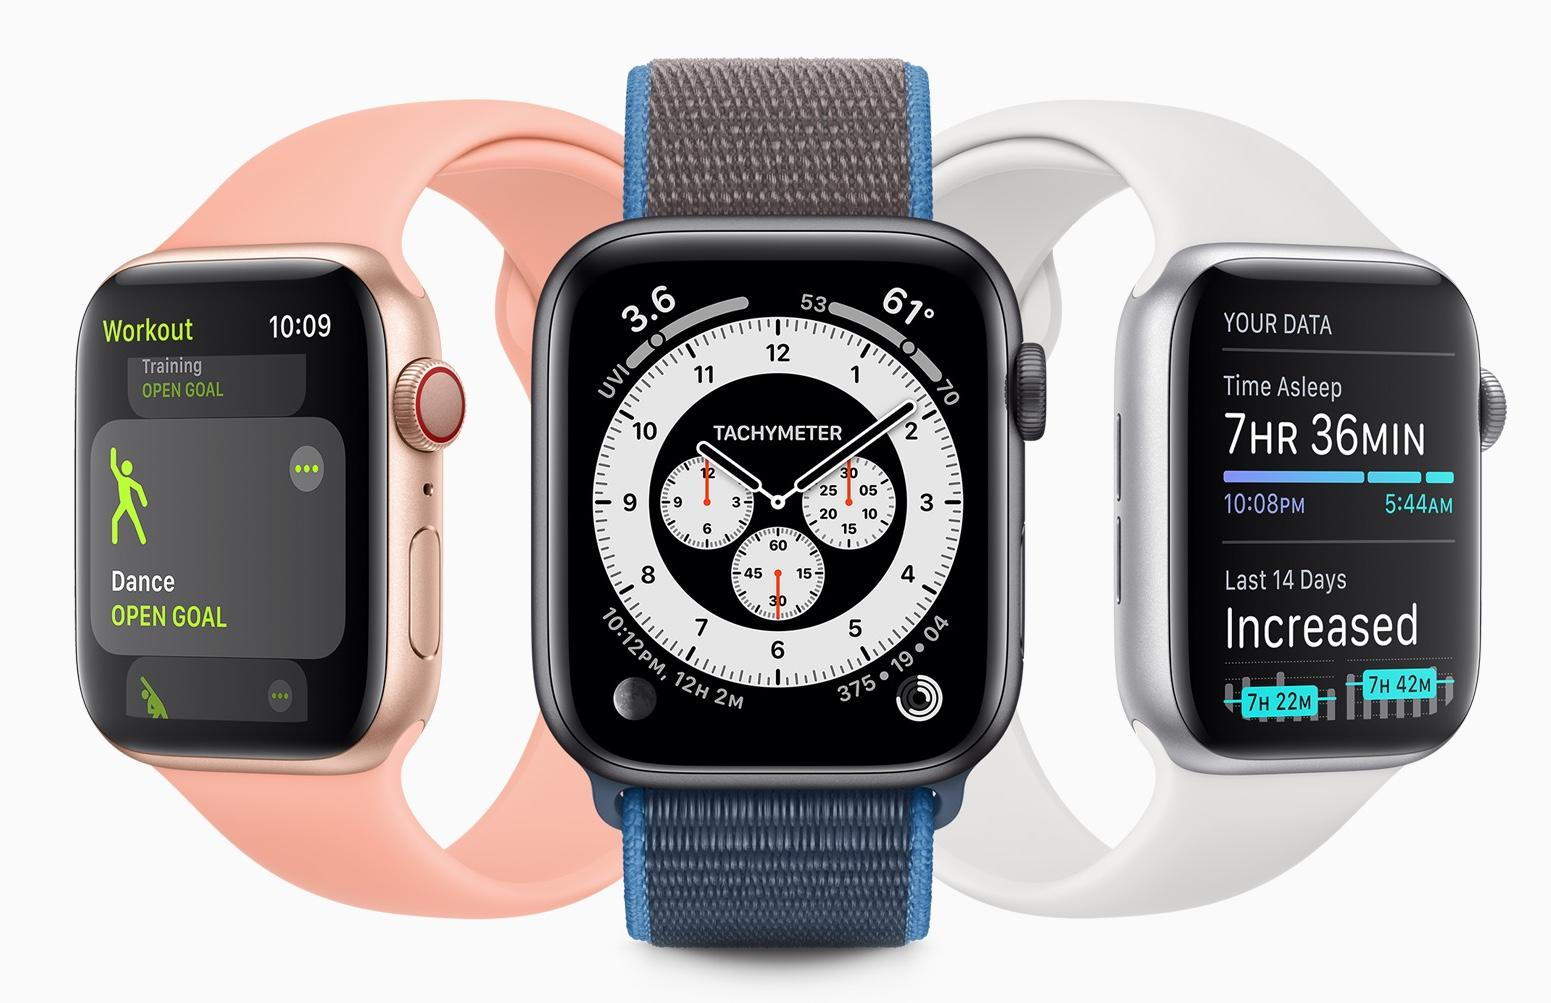 The Apple Watch is now easily the best smartwatch in the world